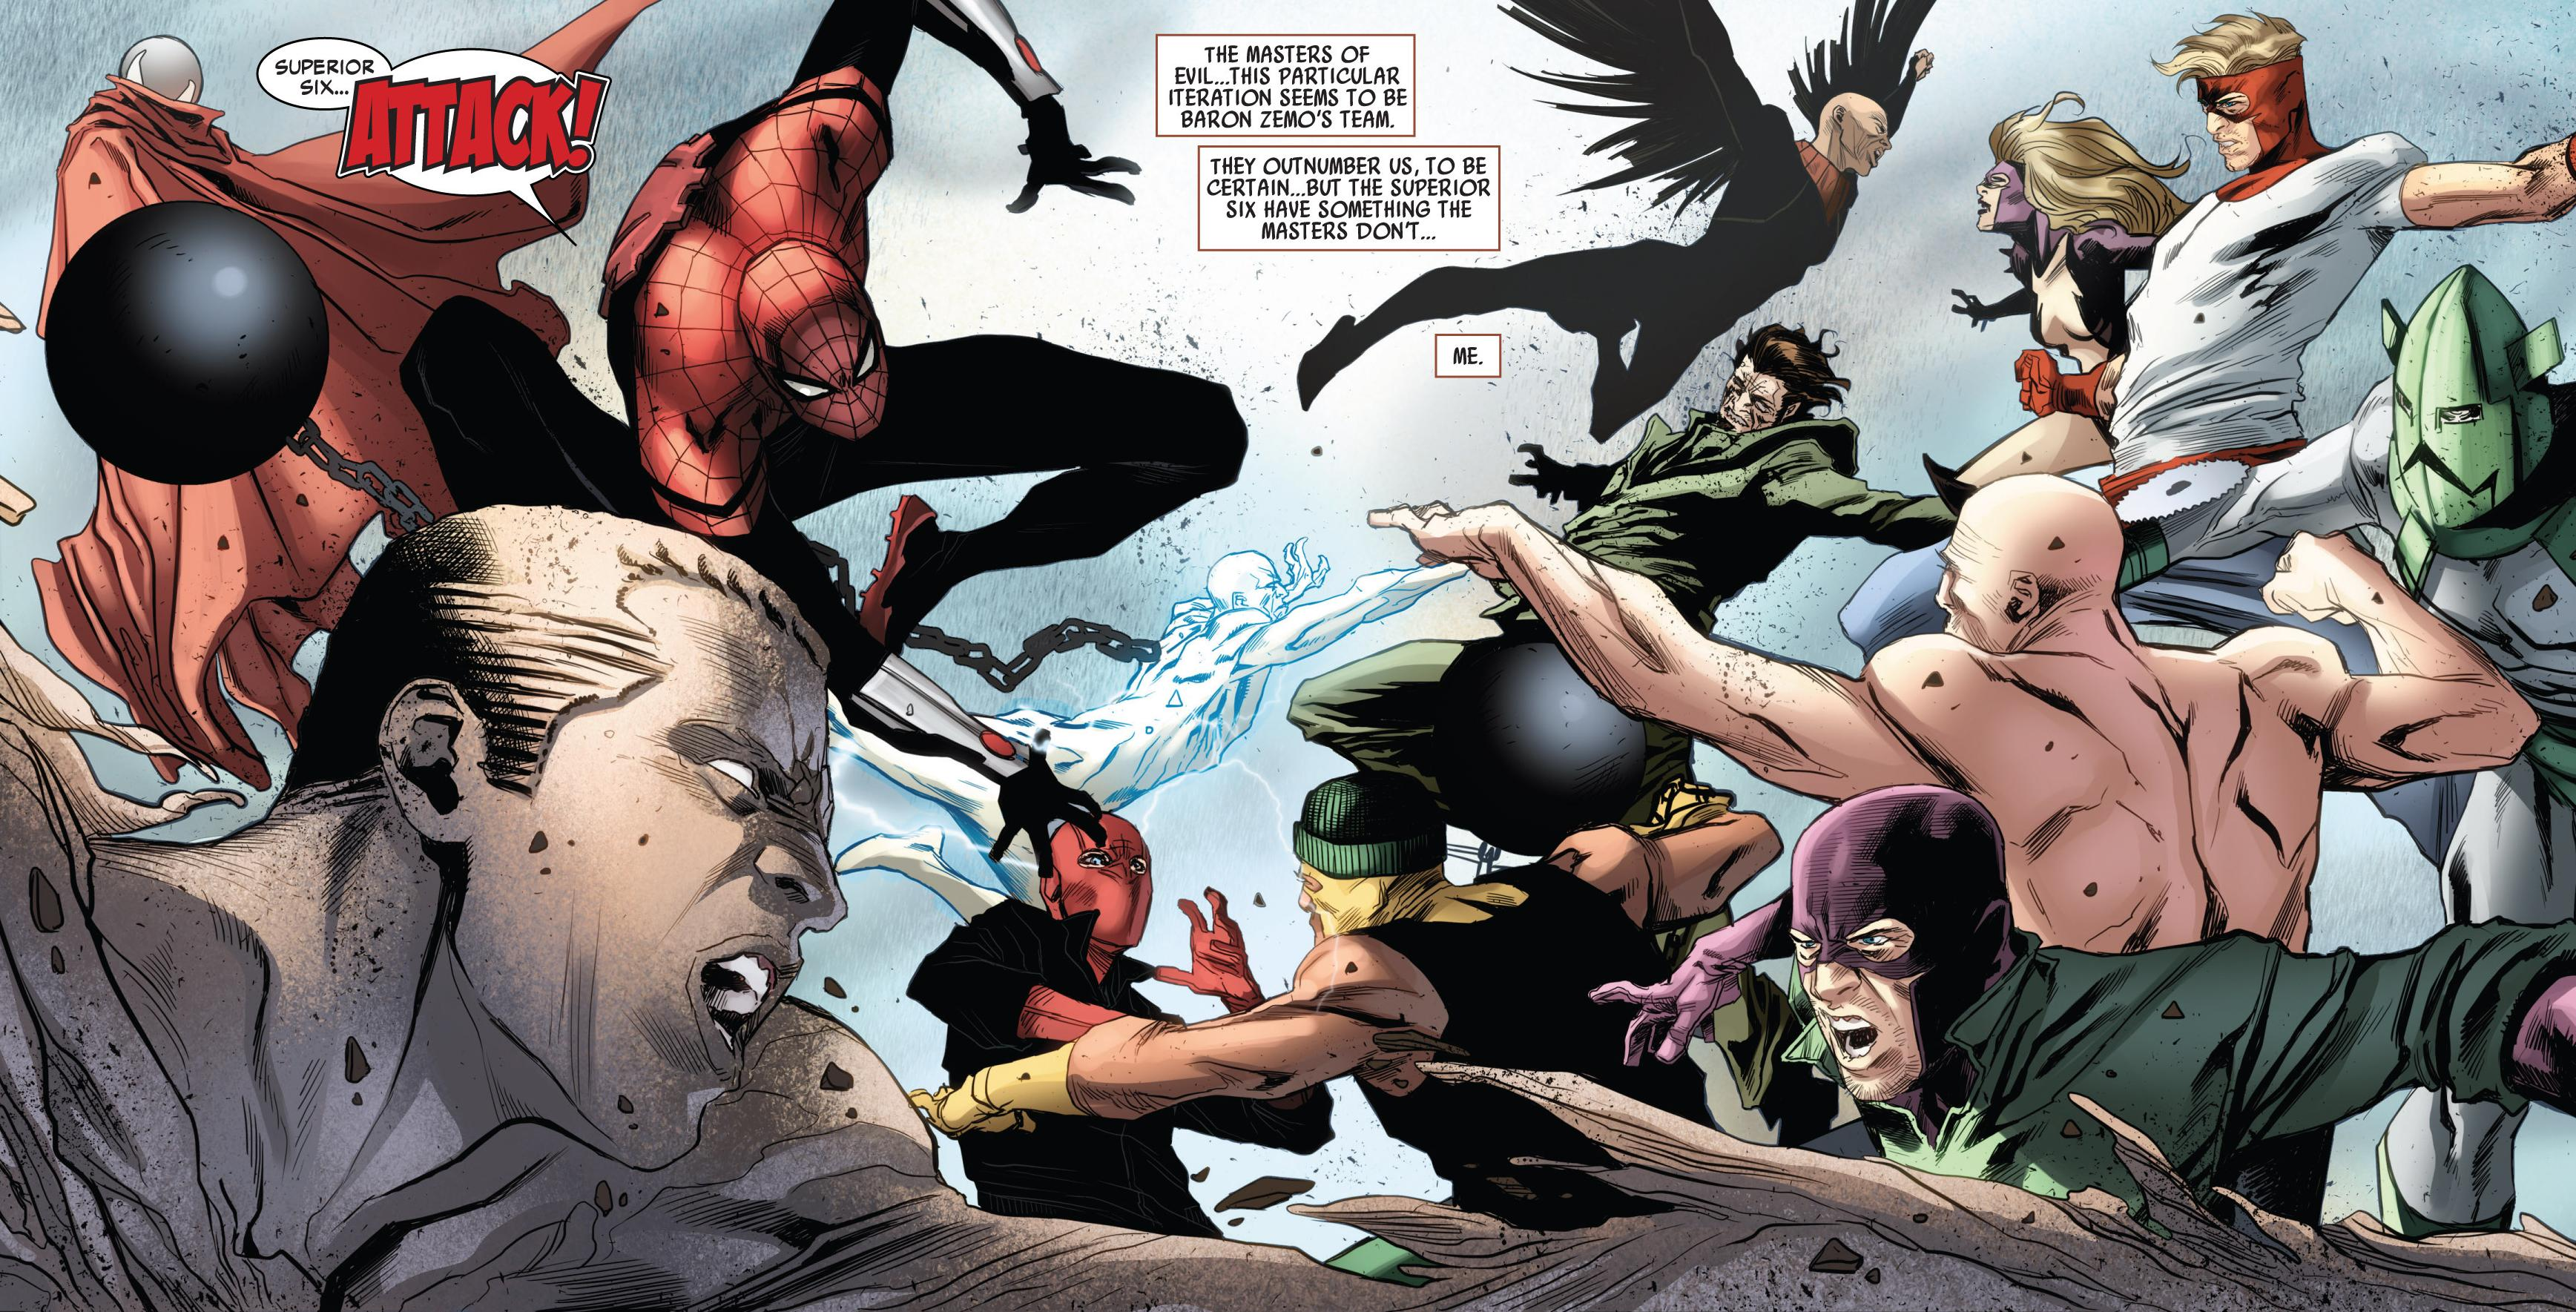 Superior Six (Earth-616) vs. Masters of Evil (Earth-616) from Superior Spider-Man Team-Up Vol 1 6 001.jpg